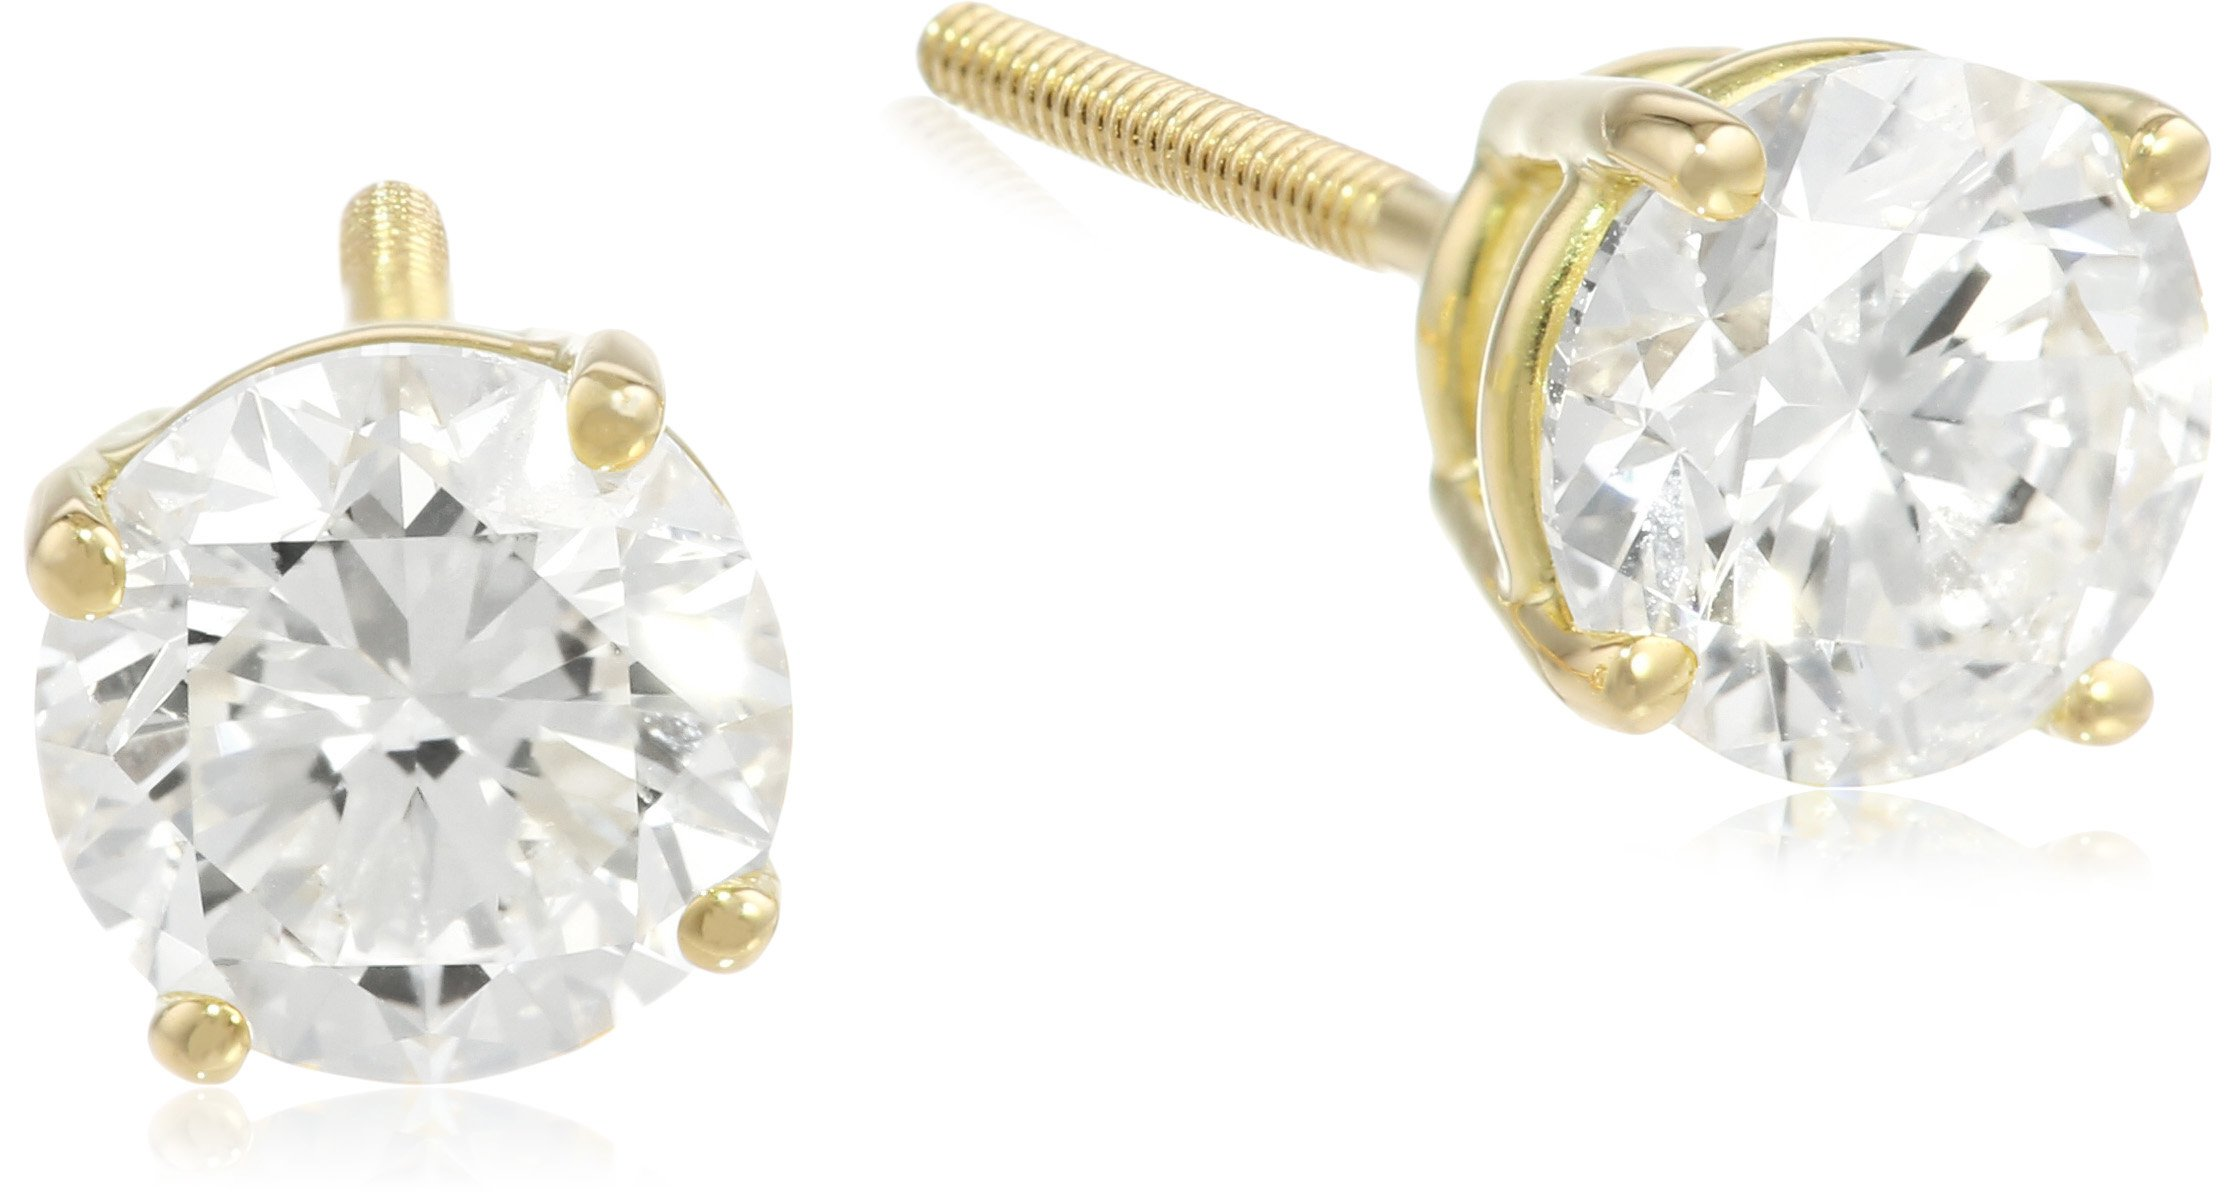 IGI Certified 18k Yellow Gold, Round-Cut, Diamond 4-Prong Studs (2 cttw, H-I Color, SI1-SI2 Clarity) by Amazon Collection